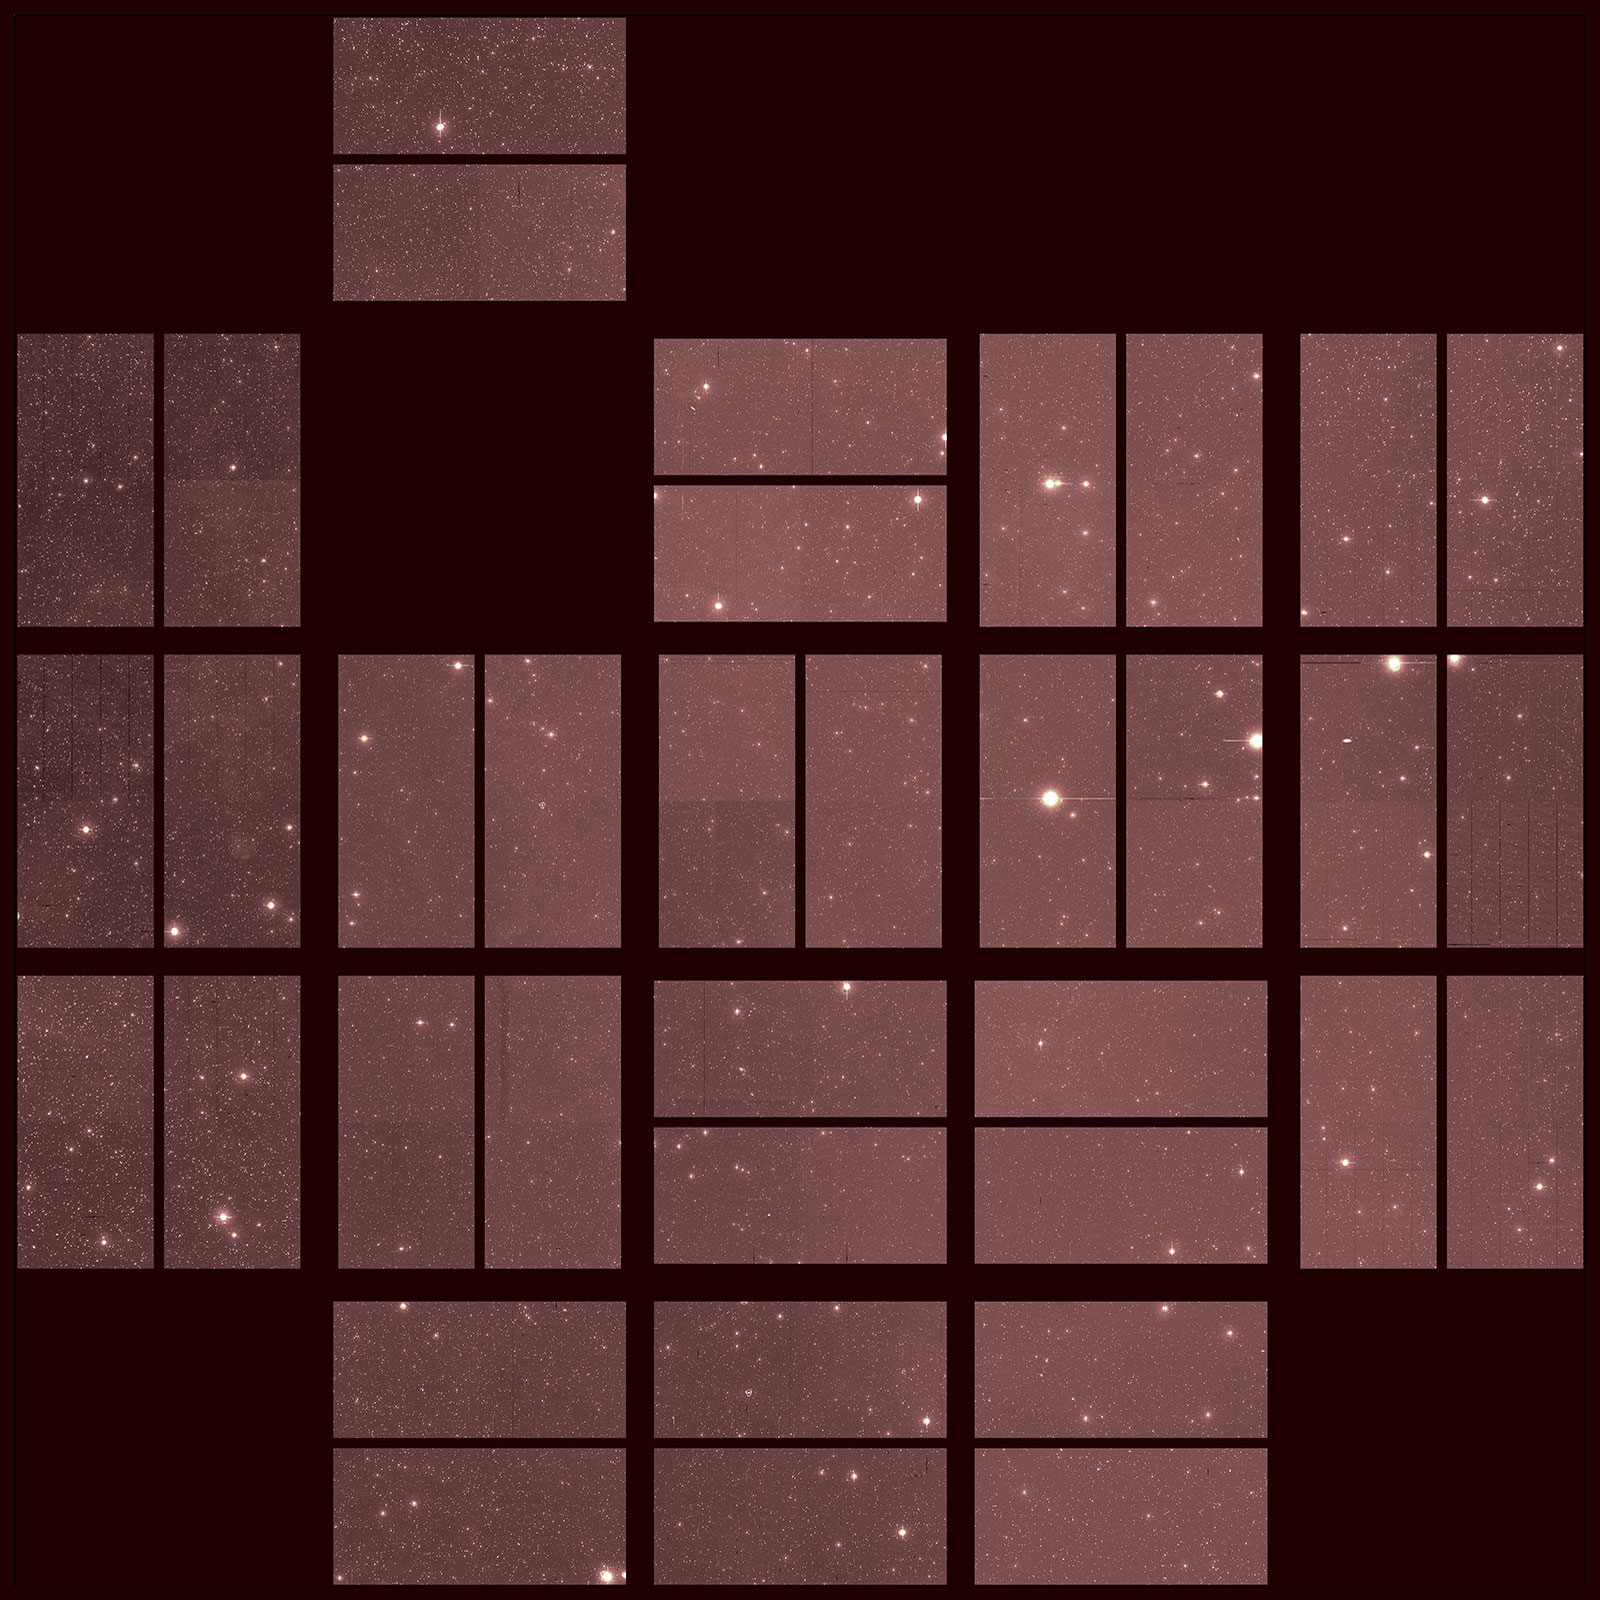 Grid view of distant stars with panels missing.